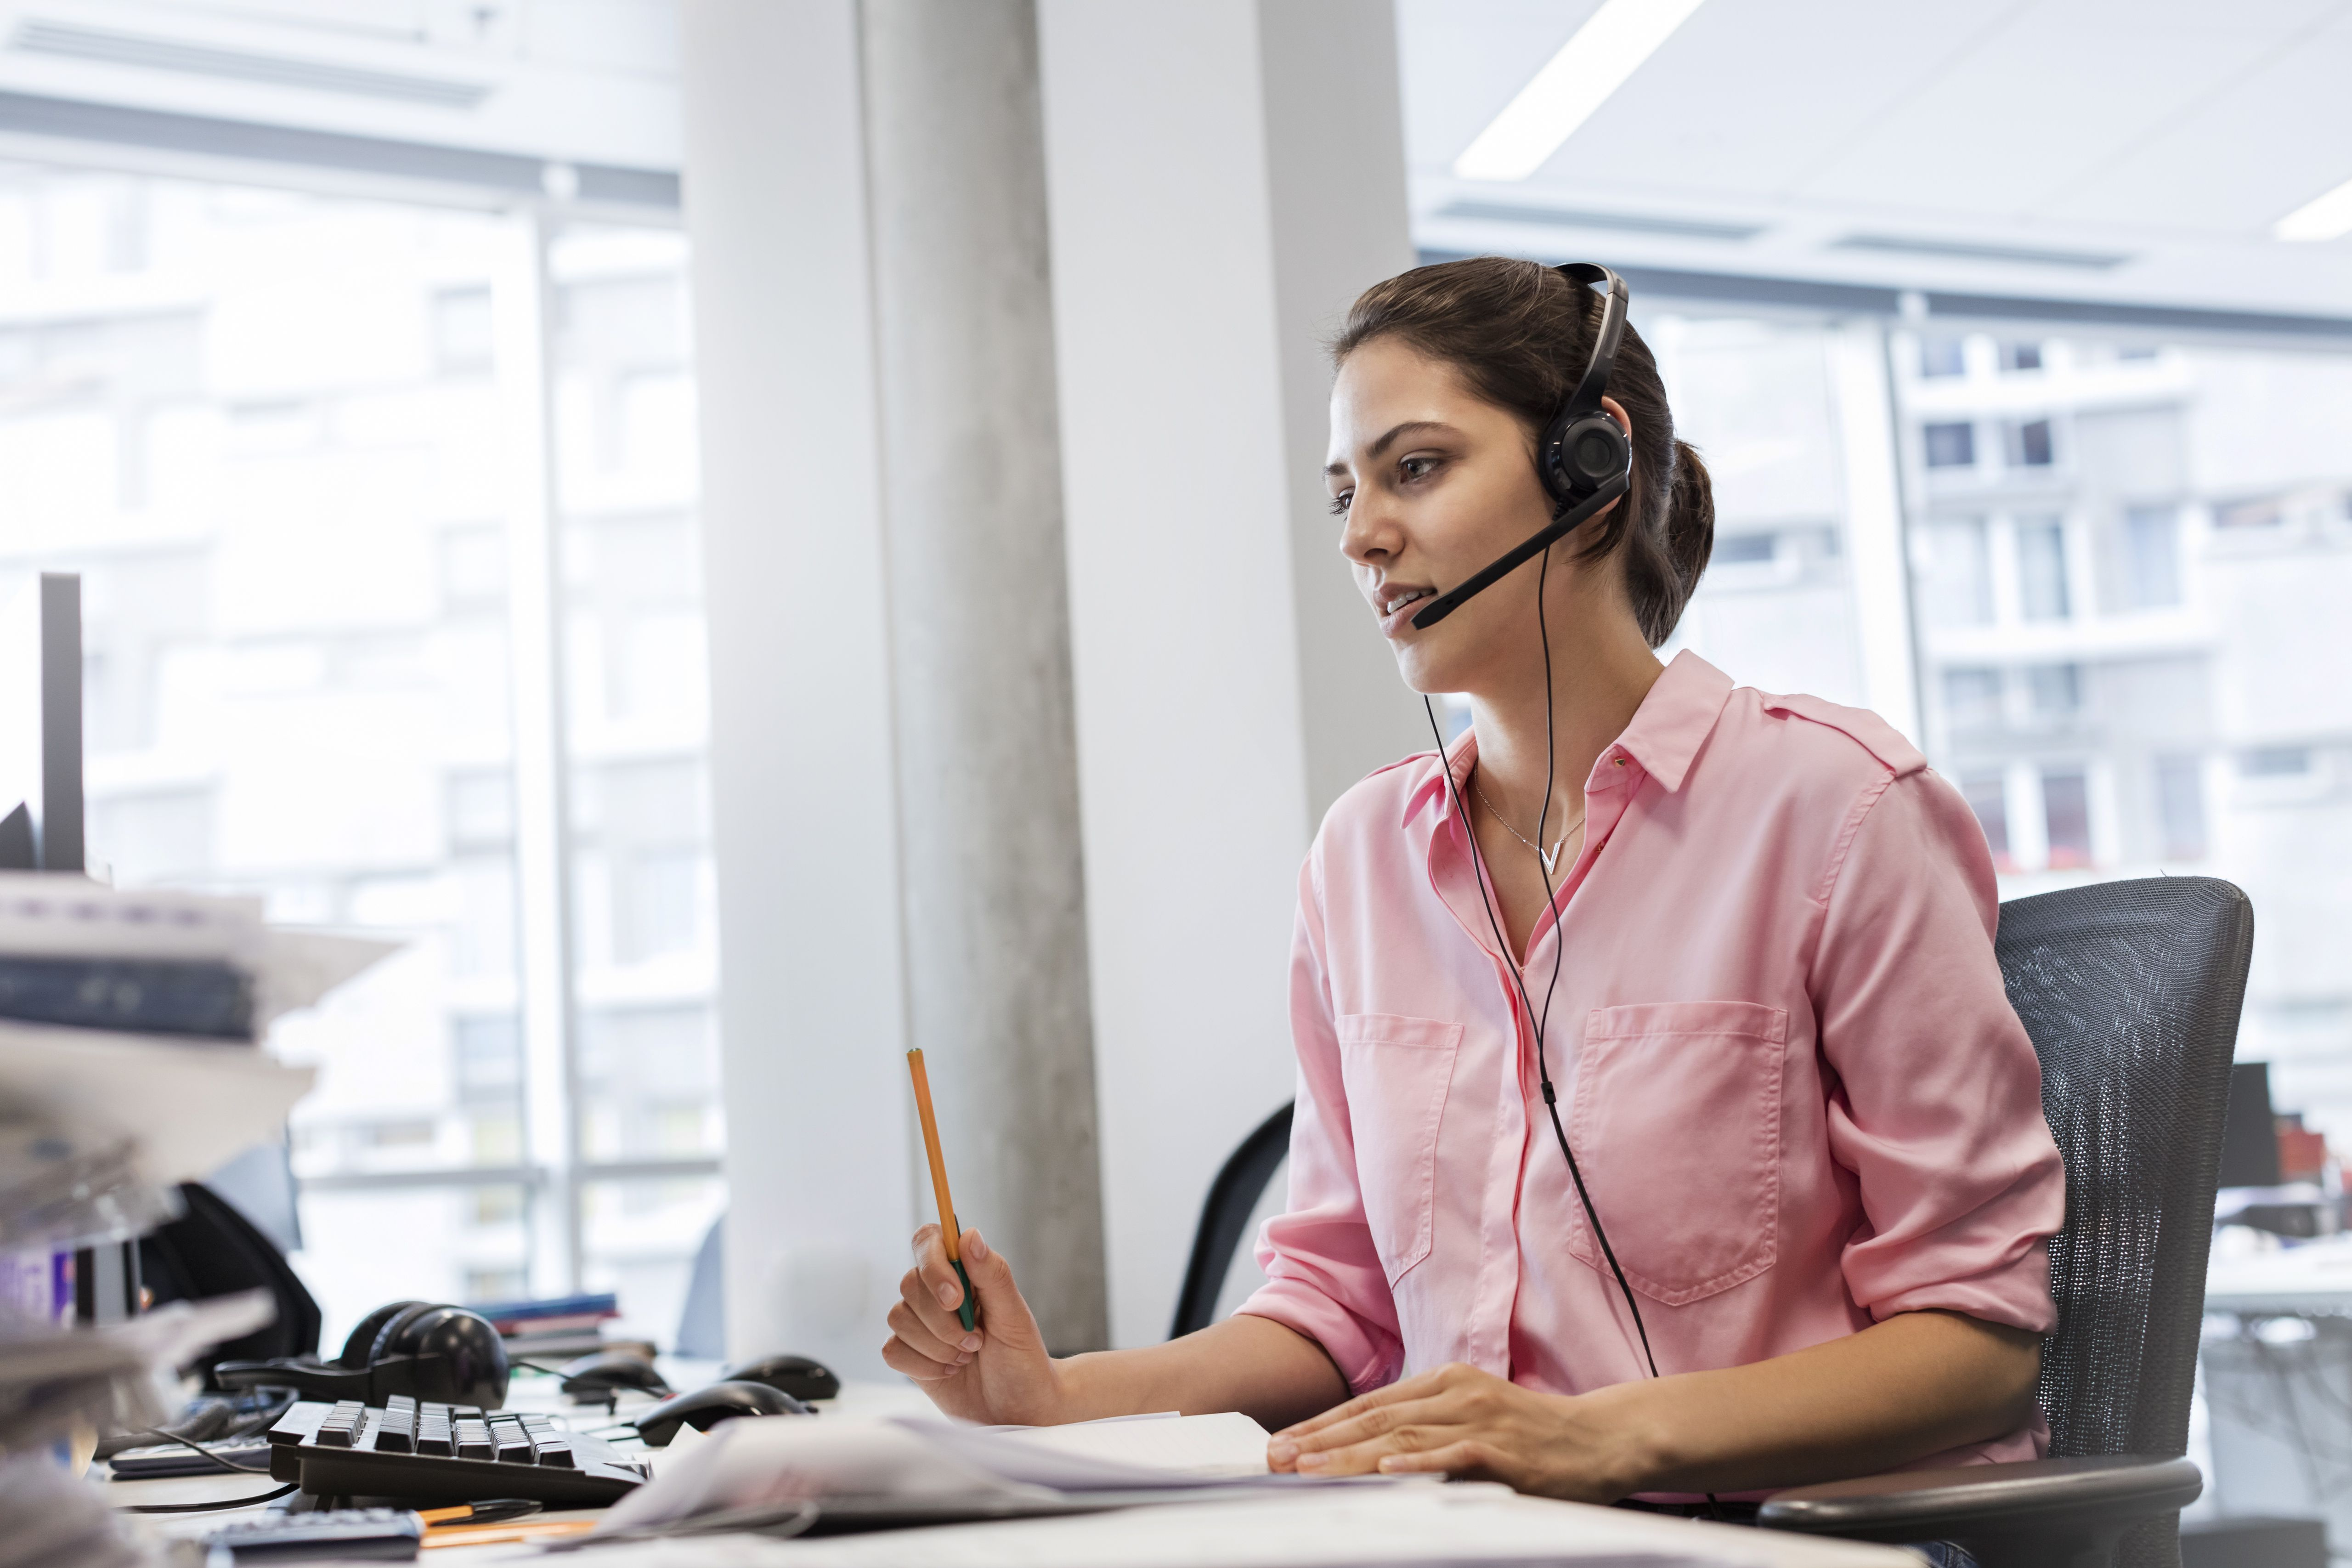 Businesswoman with hands-free device talking on telephone at office desk